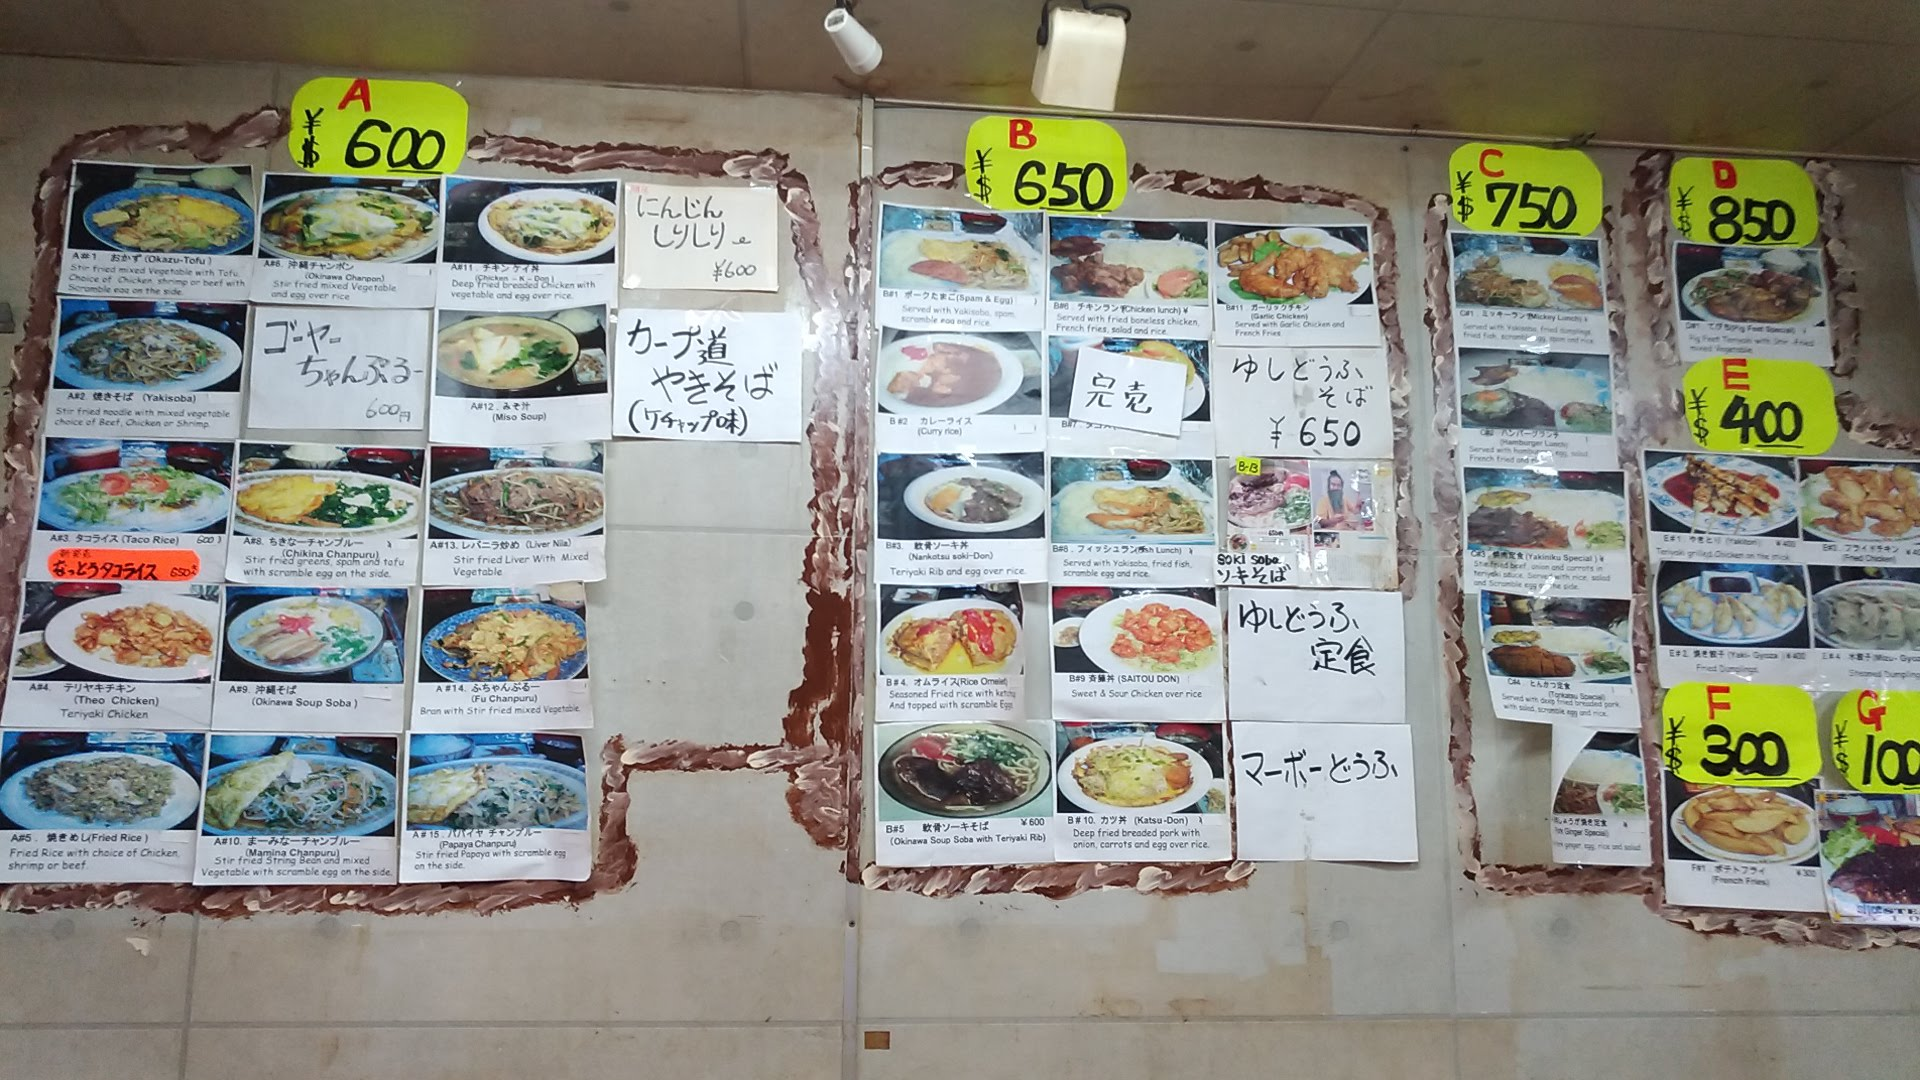 The menu is affixed to the store wall with a photo